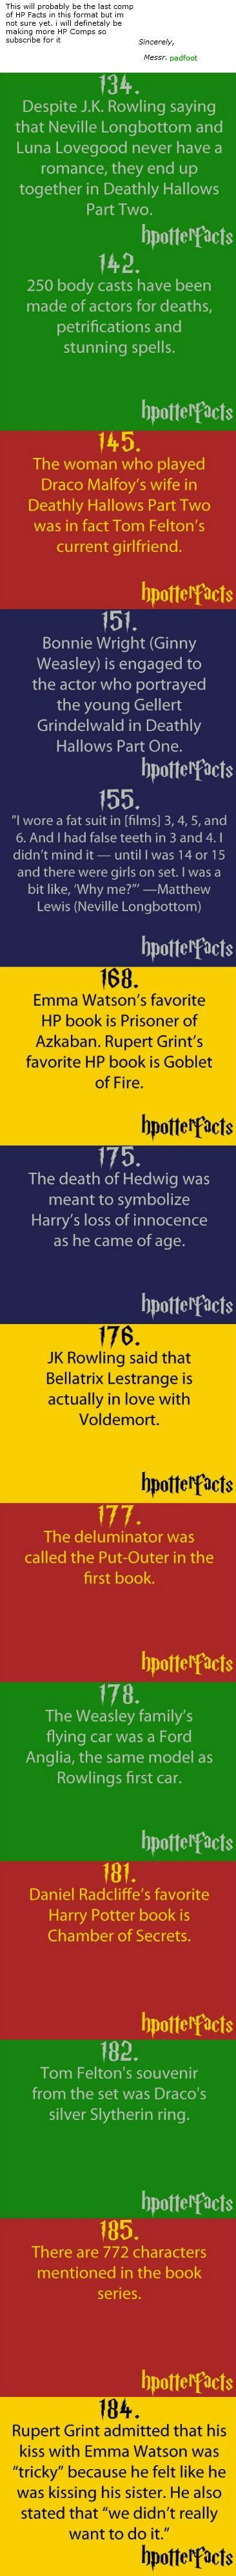 Harry potter facts. I find it interesting that Daniel, Emma, and Rupert's favorite HP books are earlier in the series.: